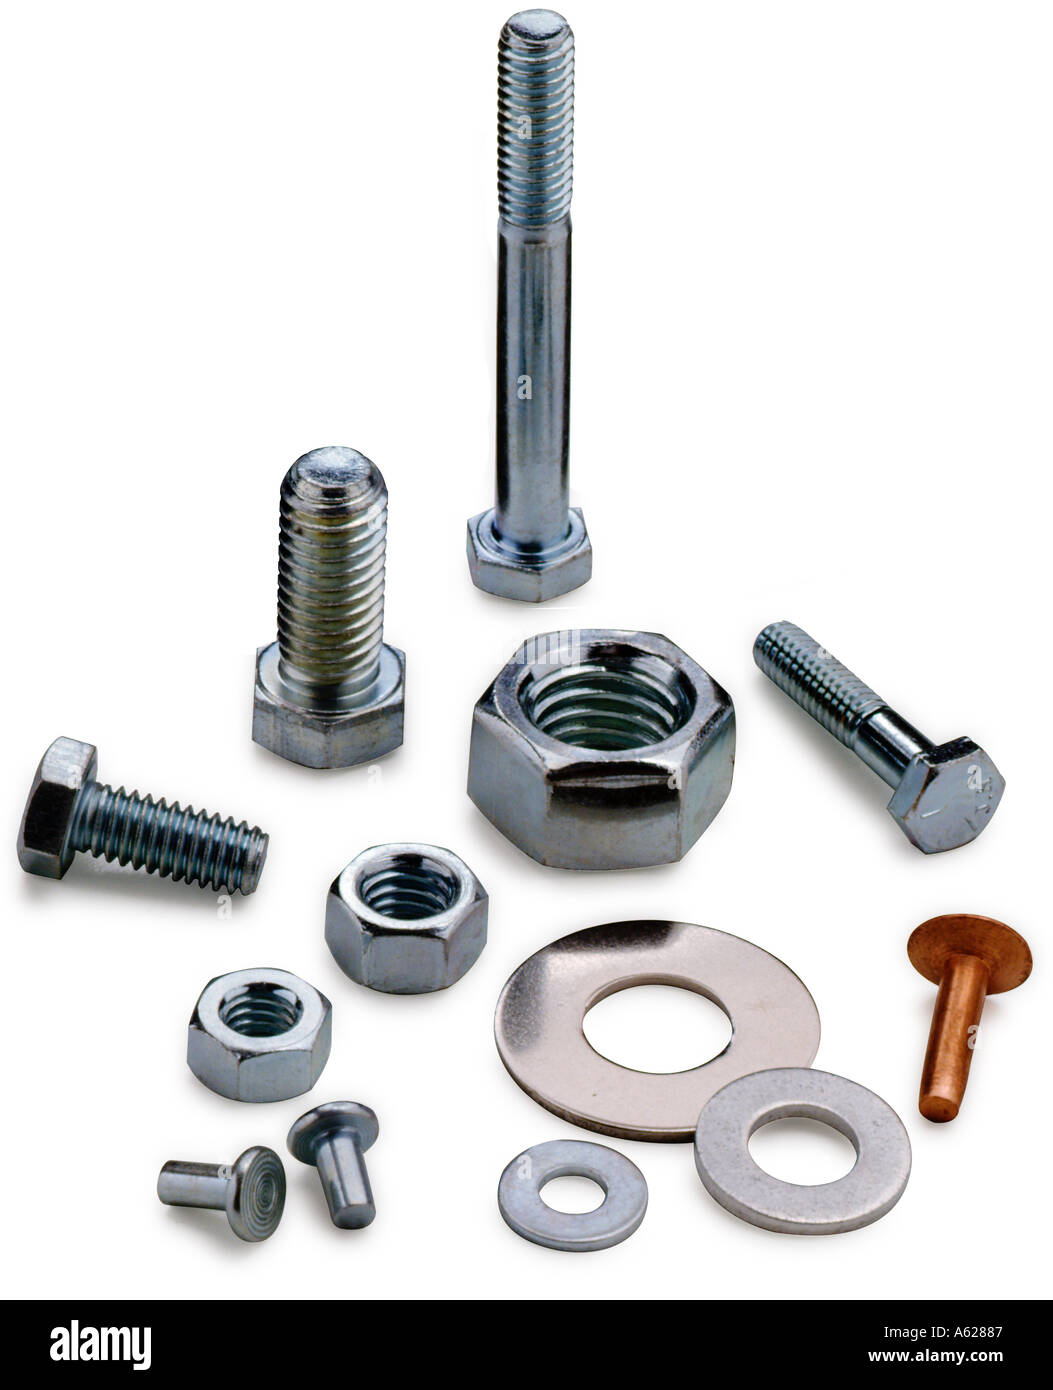 Various nuts bolts and washers - Stock Image